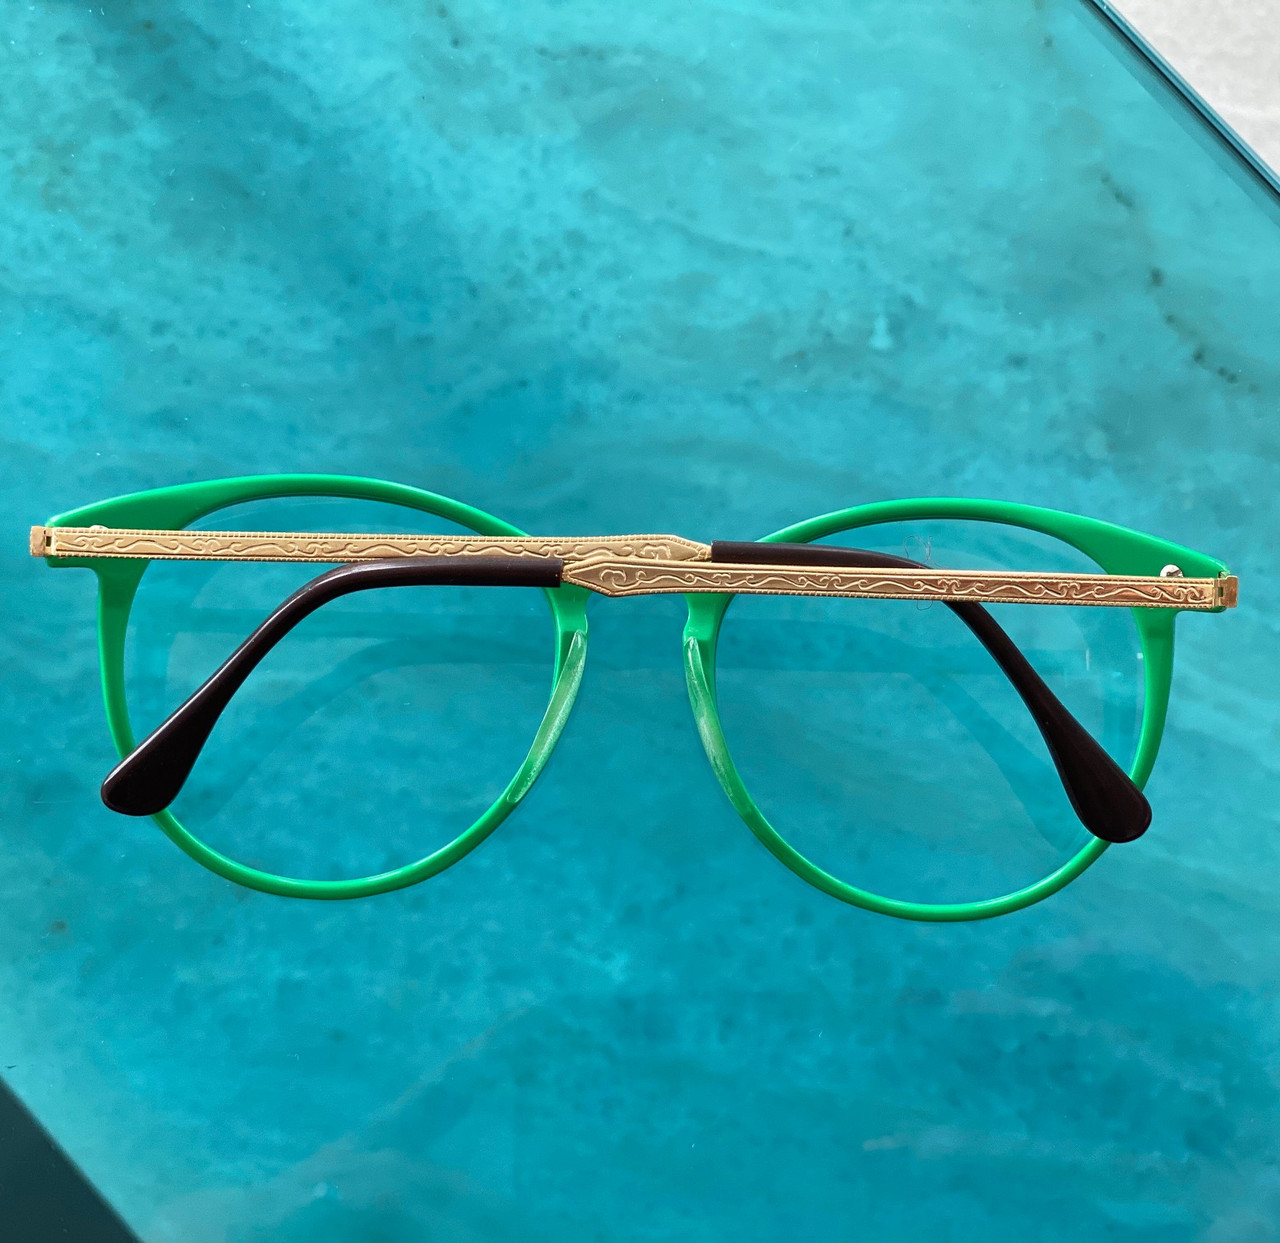 GEEK Couture Style Green Stylish Glasses